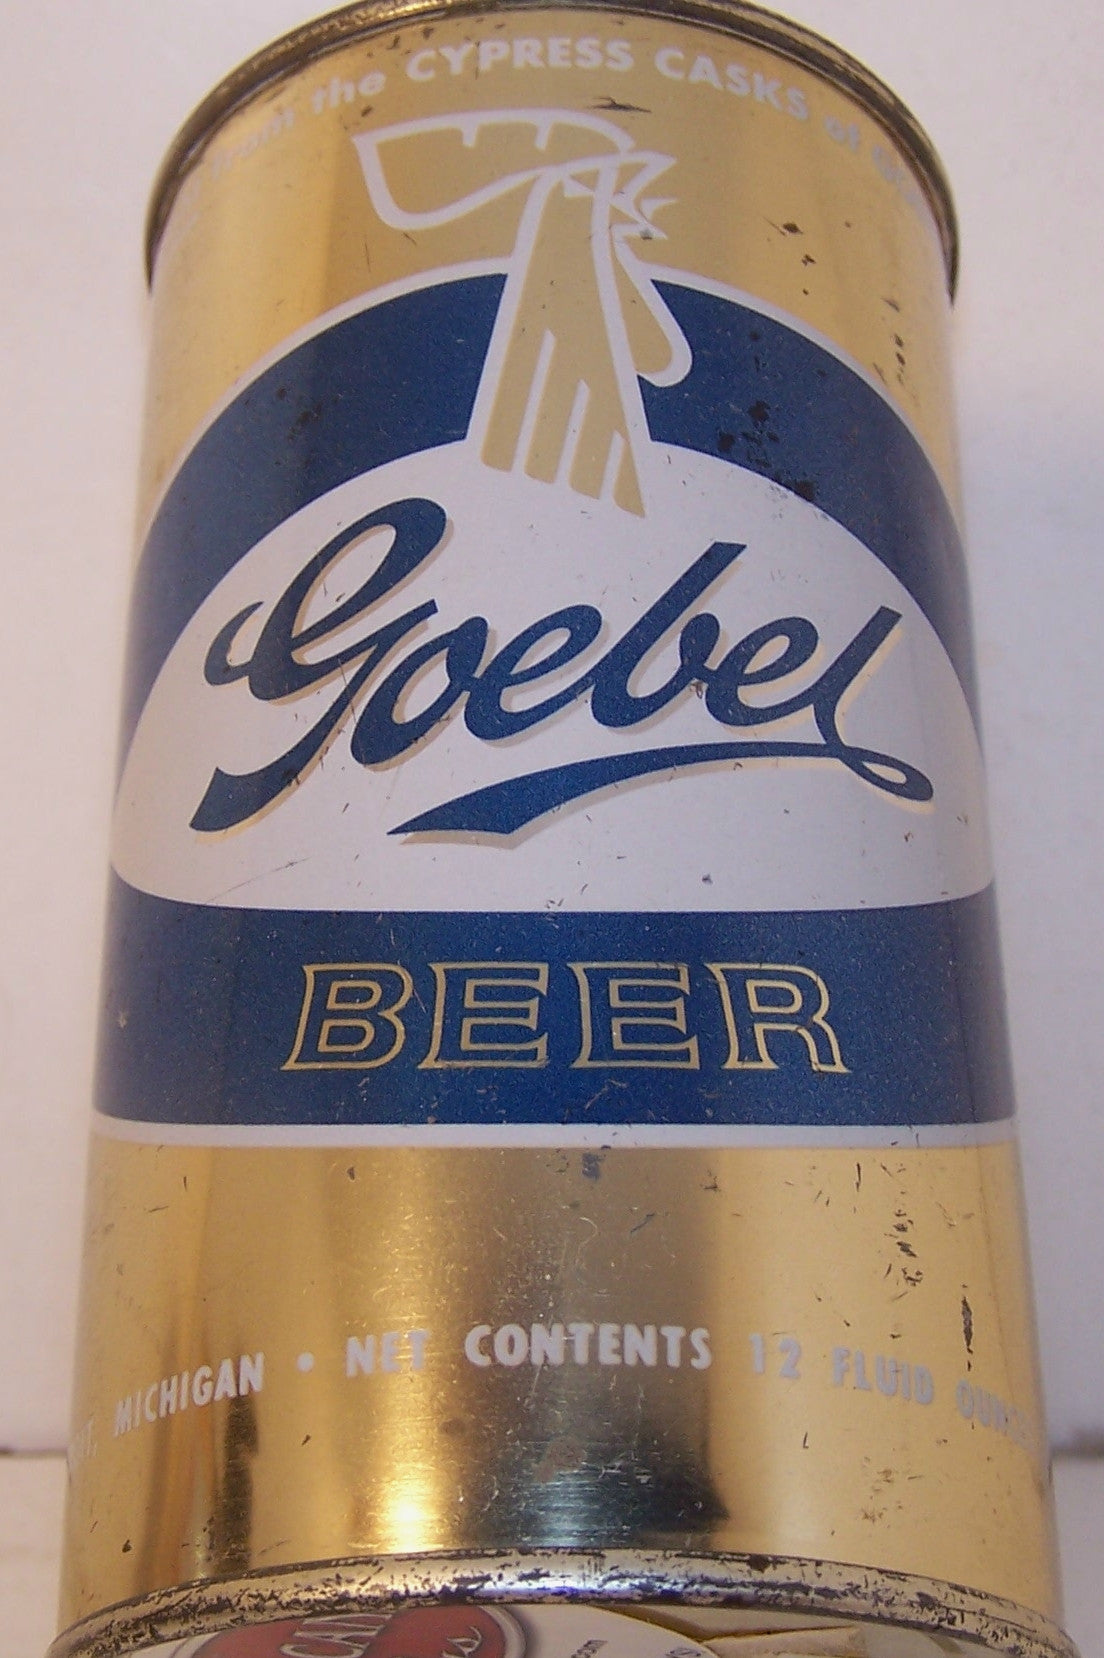 Goebel Beer, USBC 71-9, Grade 1sold5/8/15